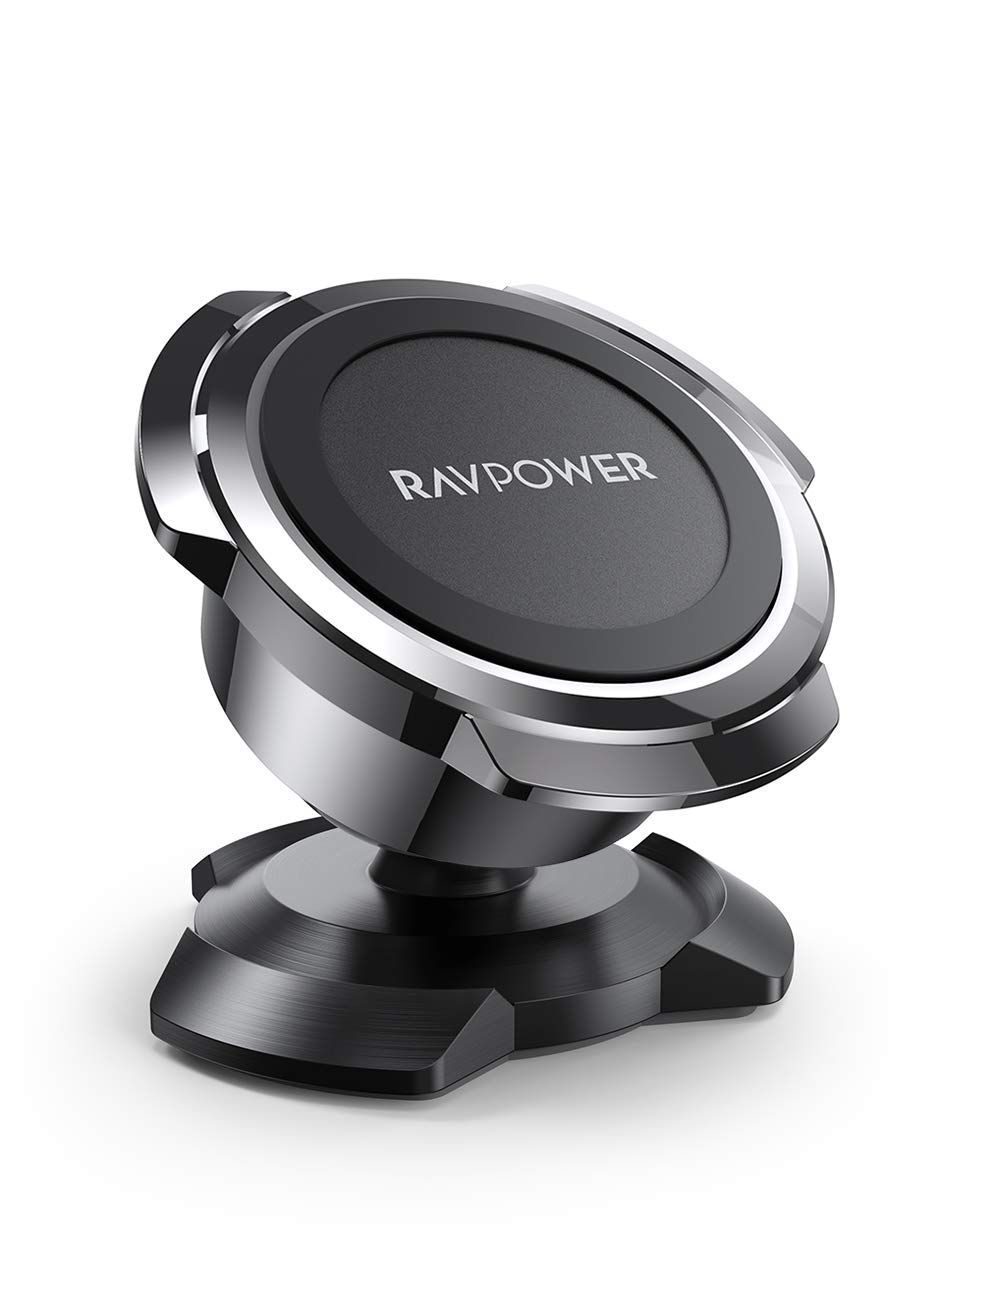 Magnetic Phone Car Mount, RAVPower Phone Holder for Car, Car Cellphone Holder, Magnetic Mount, Compatible with iPhone 11 Pro XS Max XR X 8 7 Plus Galaxy S10 S9, Note 10, LG G8 Thinq, Pixel 3 XL, Black